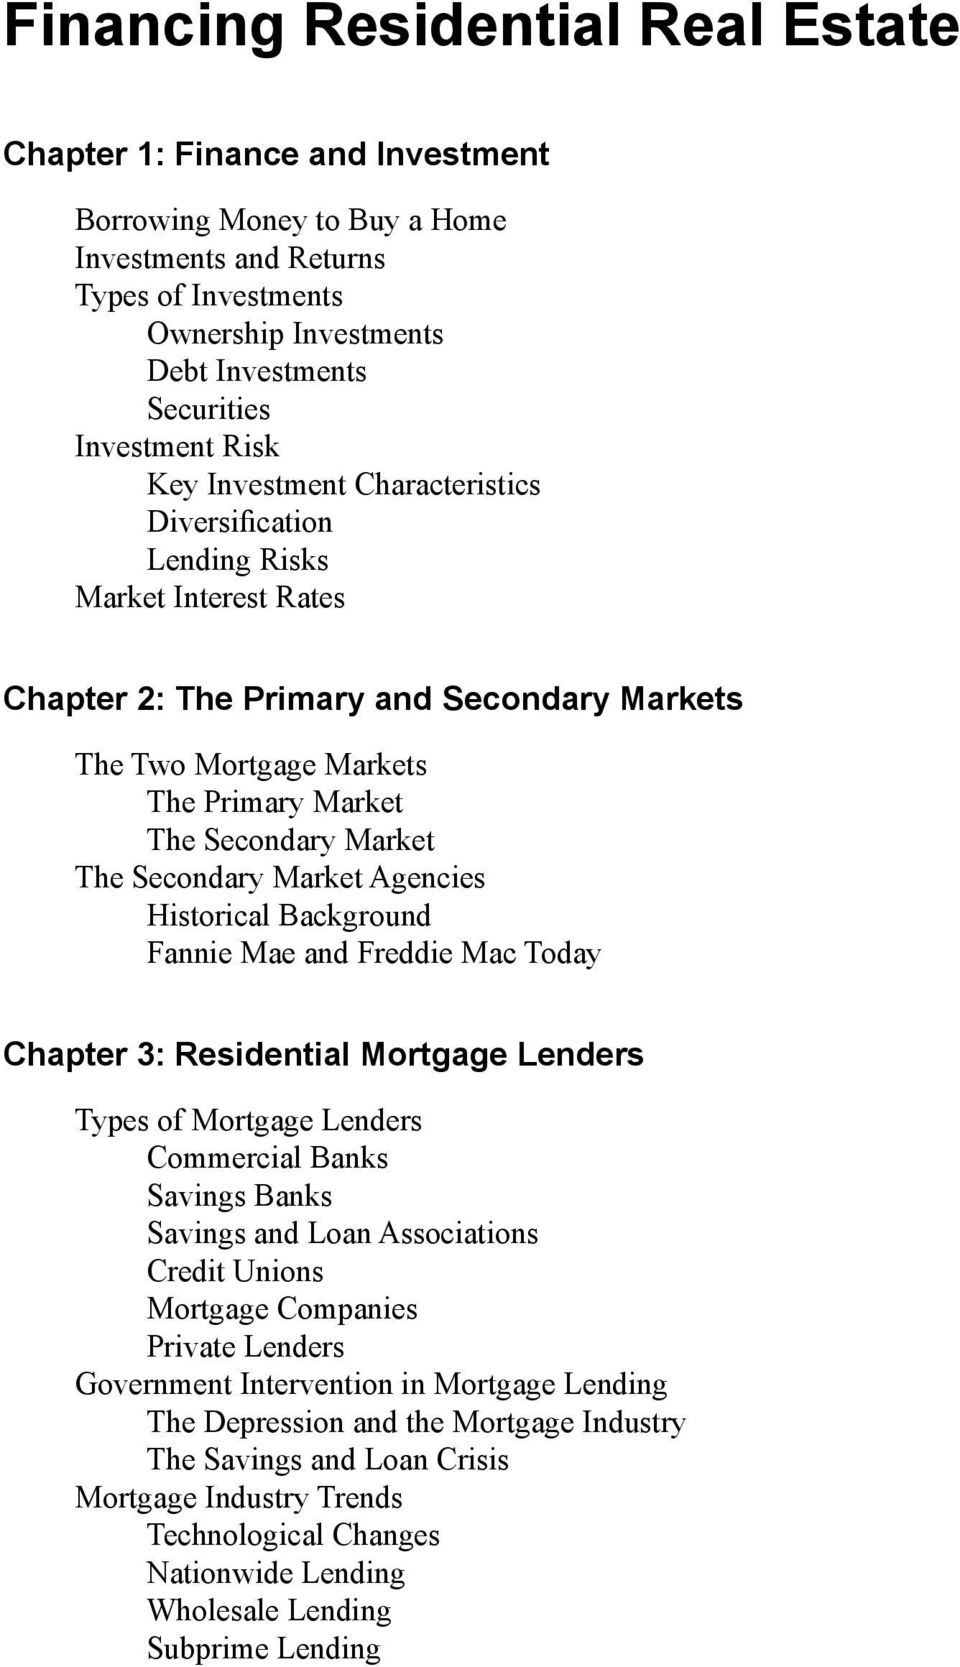 Secondary Market The Secondary Market Agencies Historical Background Fannie Mae and Freddie Mac Today Chapter 3: Residential Mortgage Lenders Types of Mortgage Lenders Commercial Banks Savings Banks